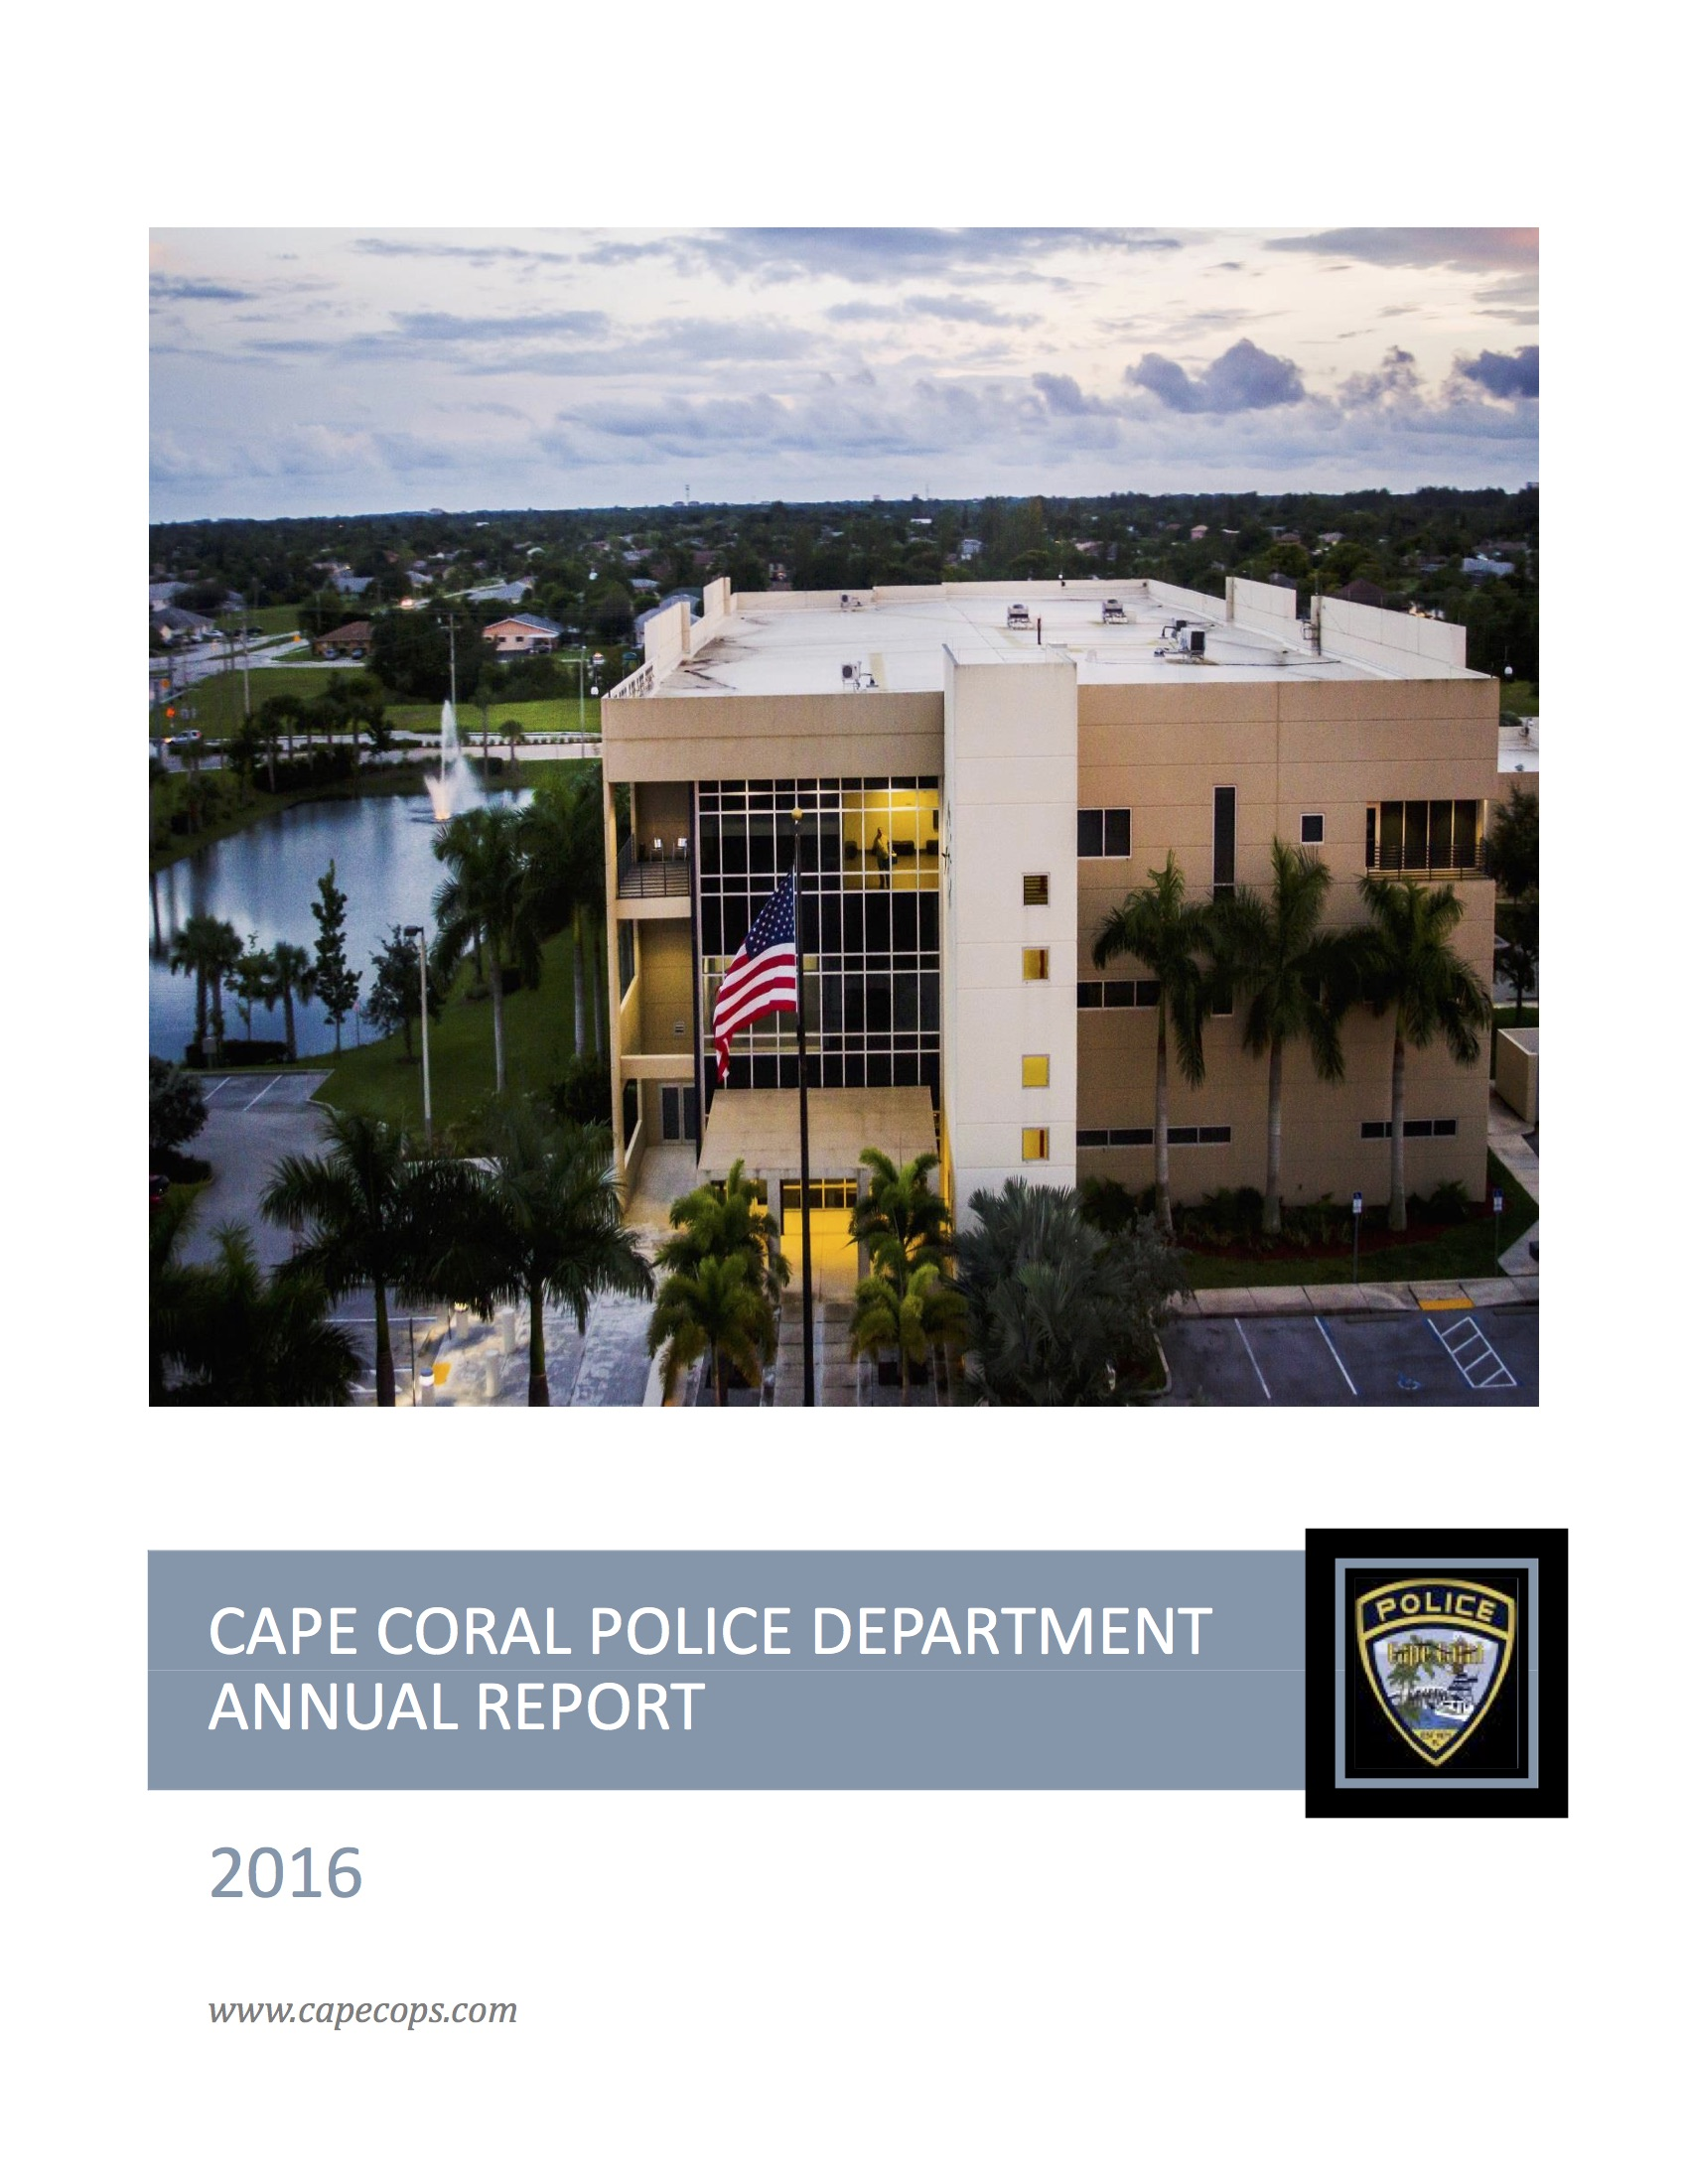 Cape Coral Police Department 2016 Annual Report - The annual report provides a bureau-by-bureau look at the